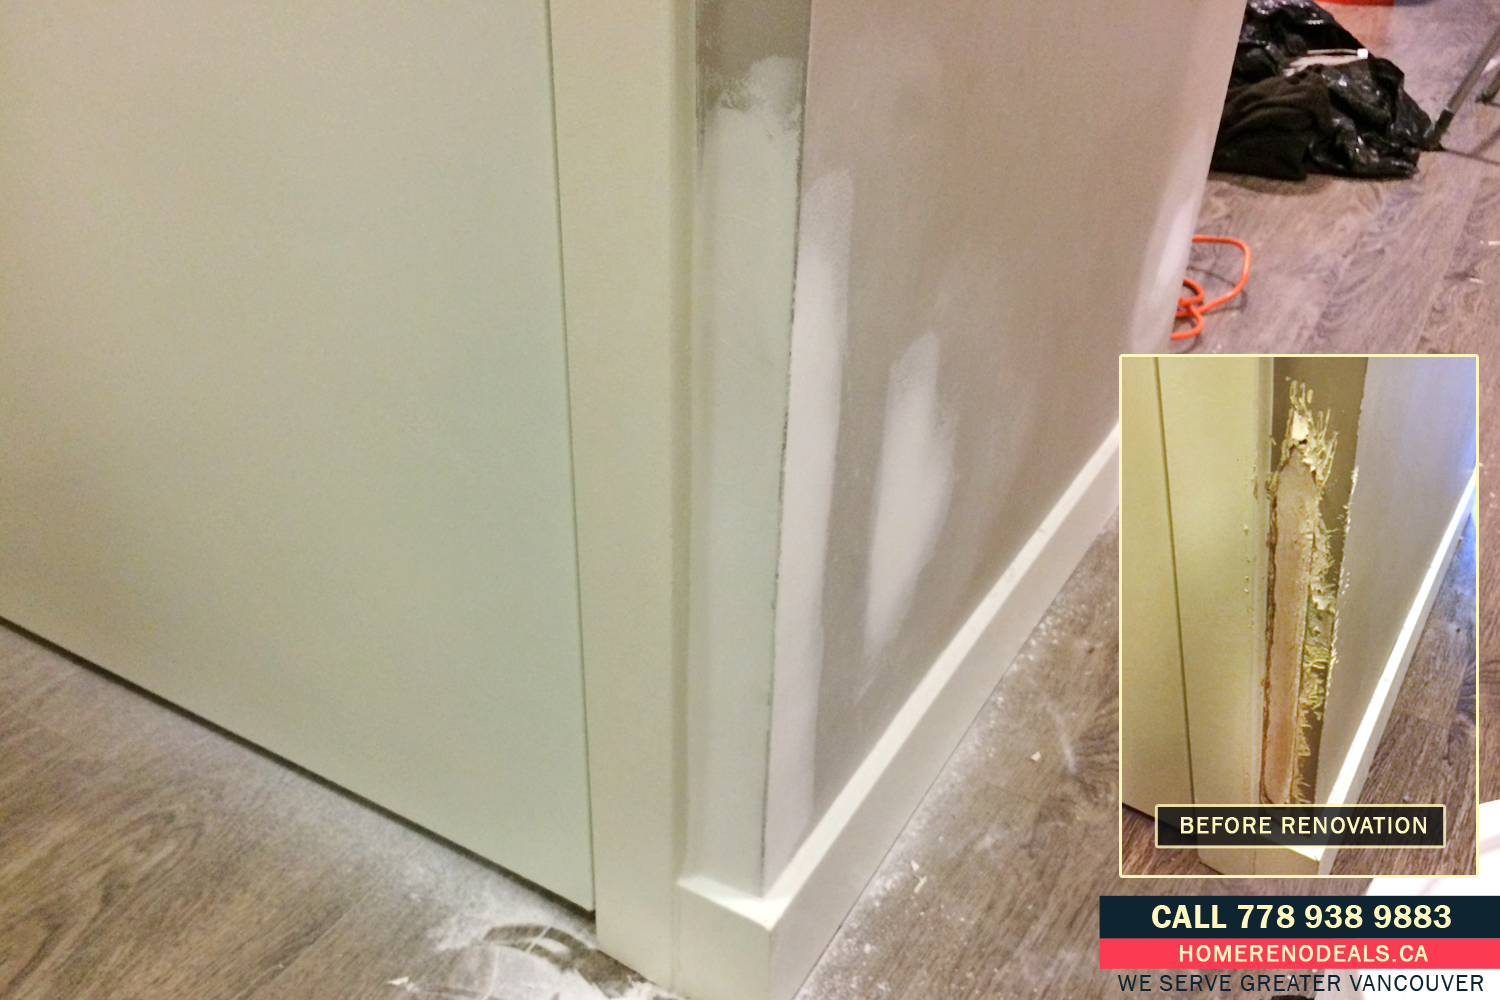 Dog, Cat and Pet Chewed Wall Repair Service in Greater Vancouver, BC